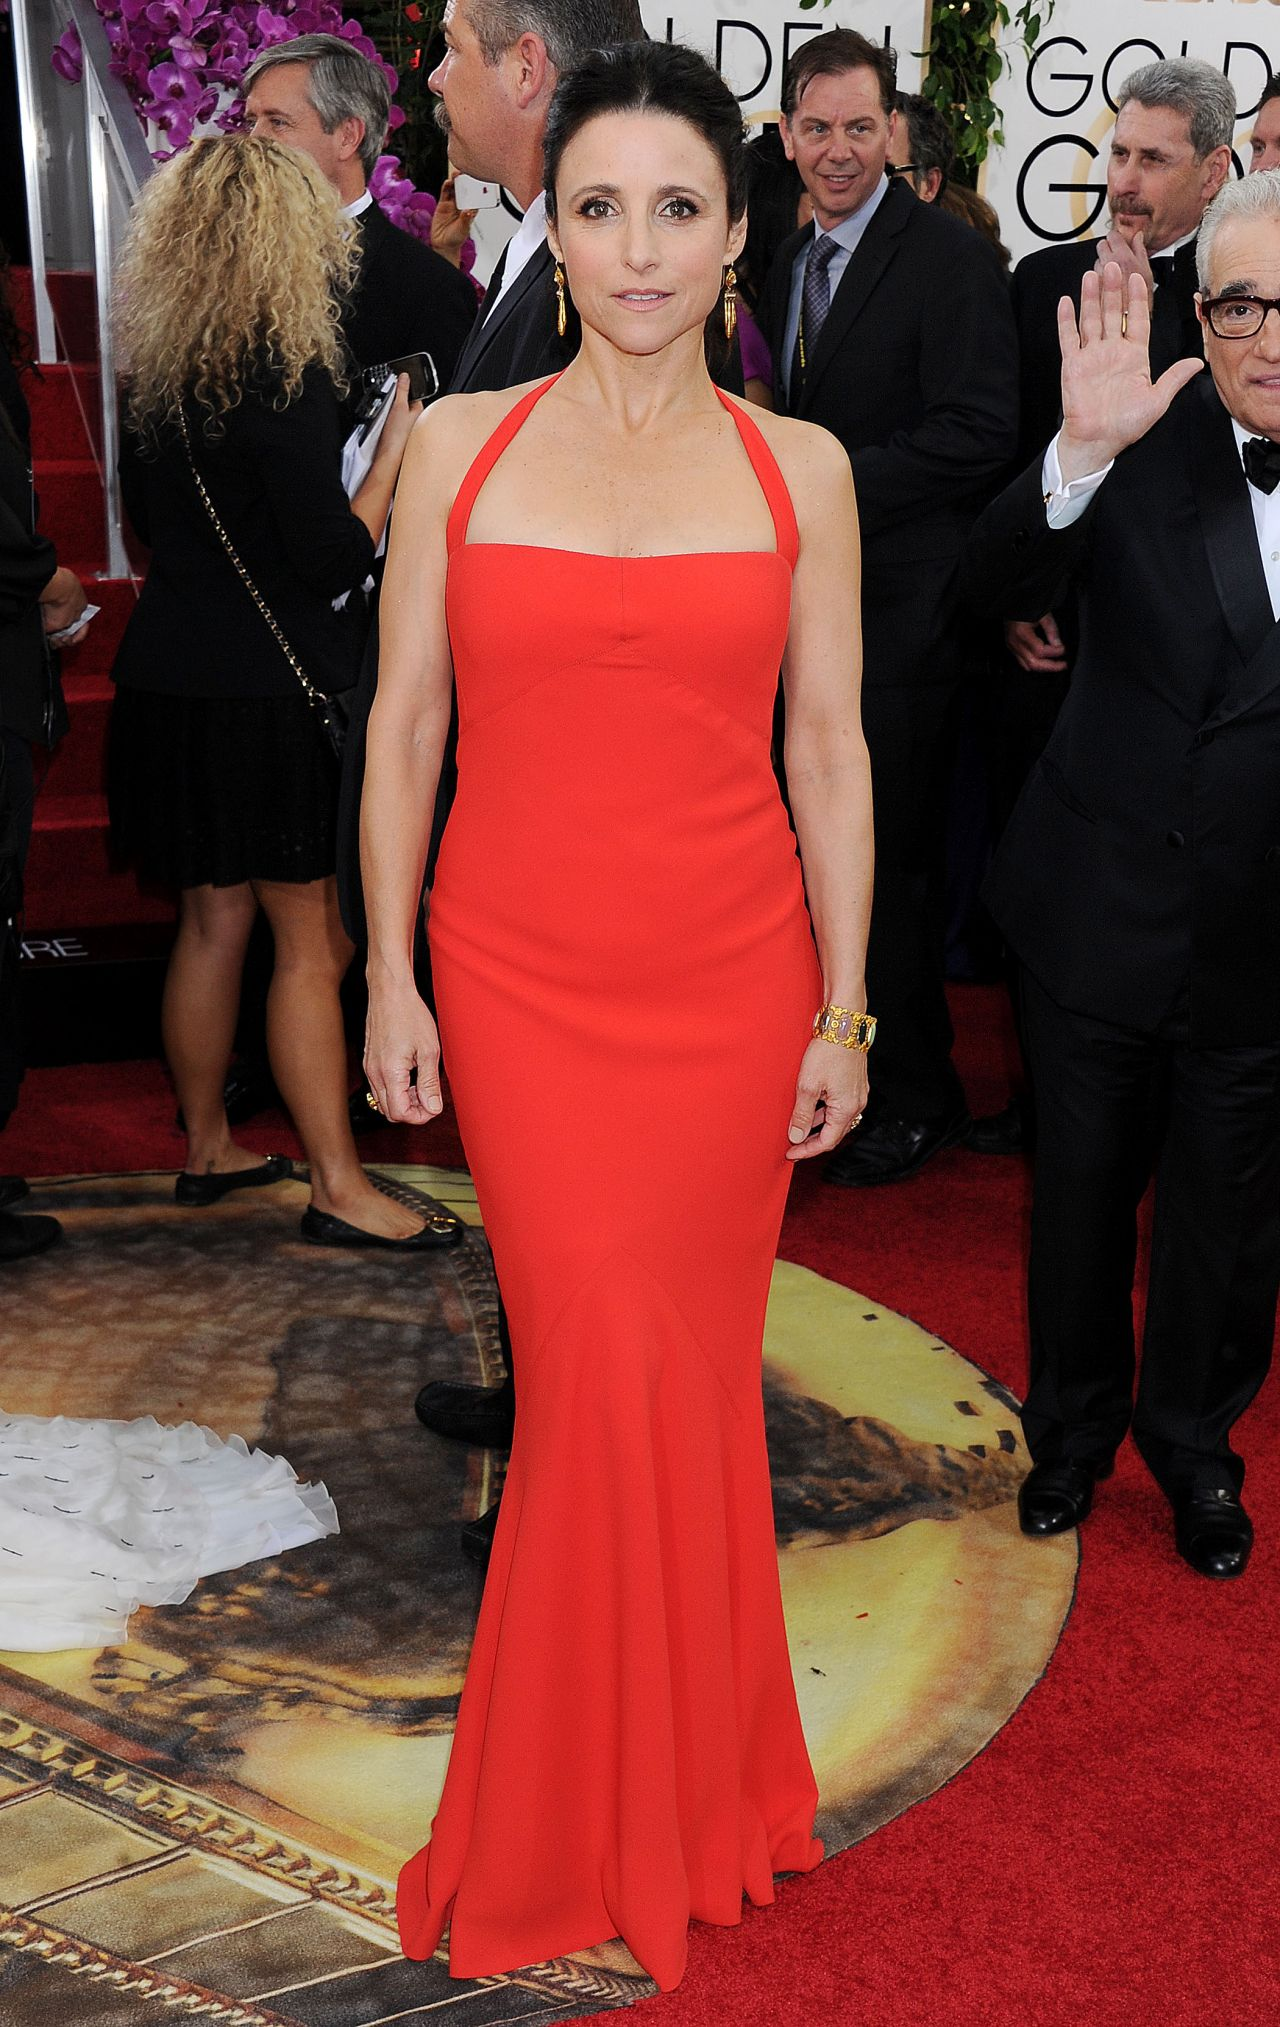 Julia Louis-Dreyfus Wears Narciso Rodriguez at 2014 Golden Globe Awards